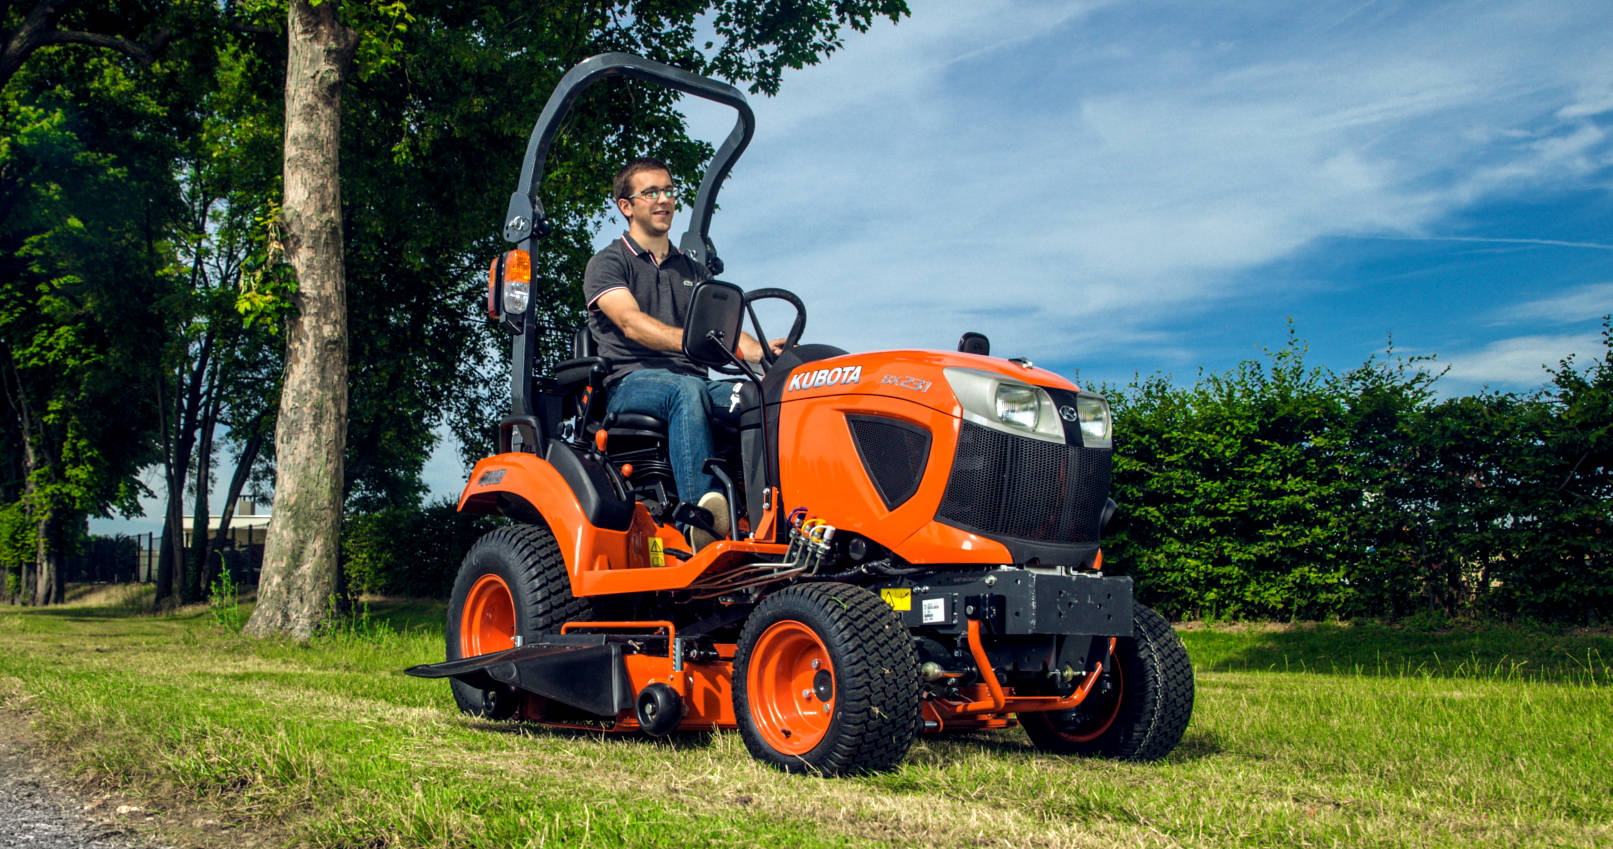 kubota bx231 compact tractor garden machinery. Black Bedroom Furniture Sets. Home Design Ideas